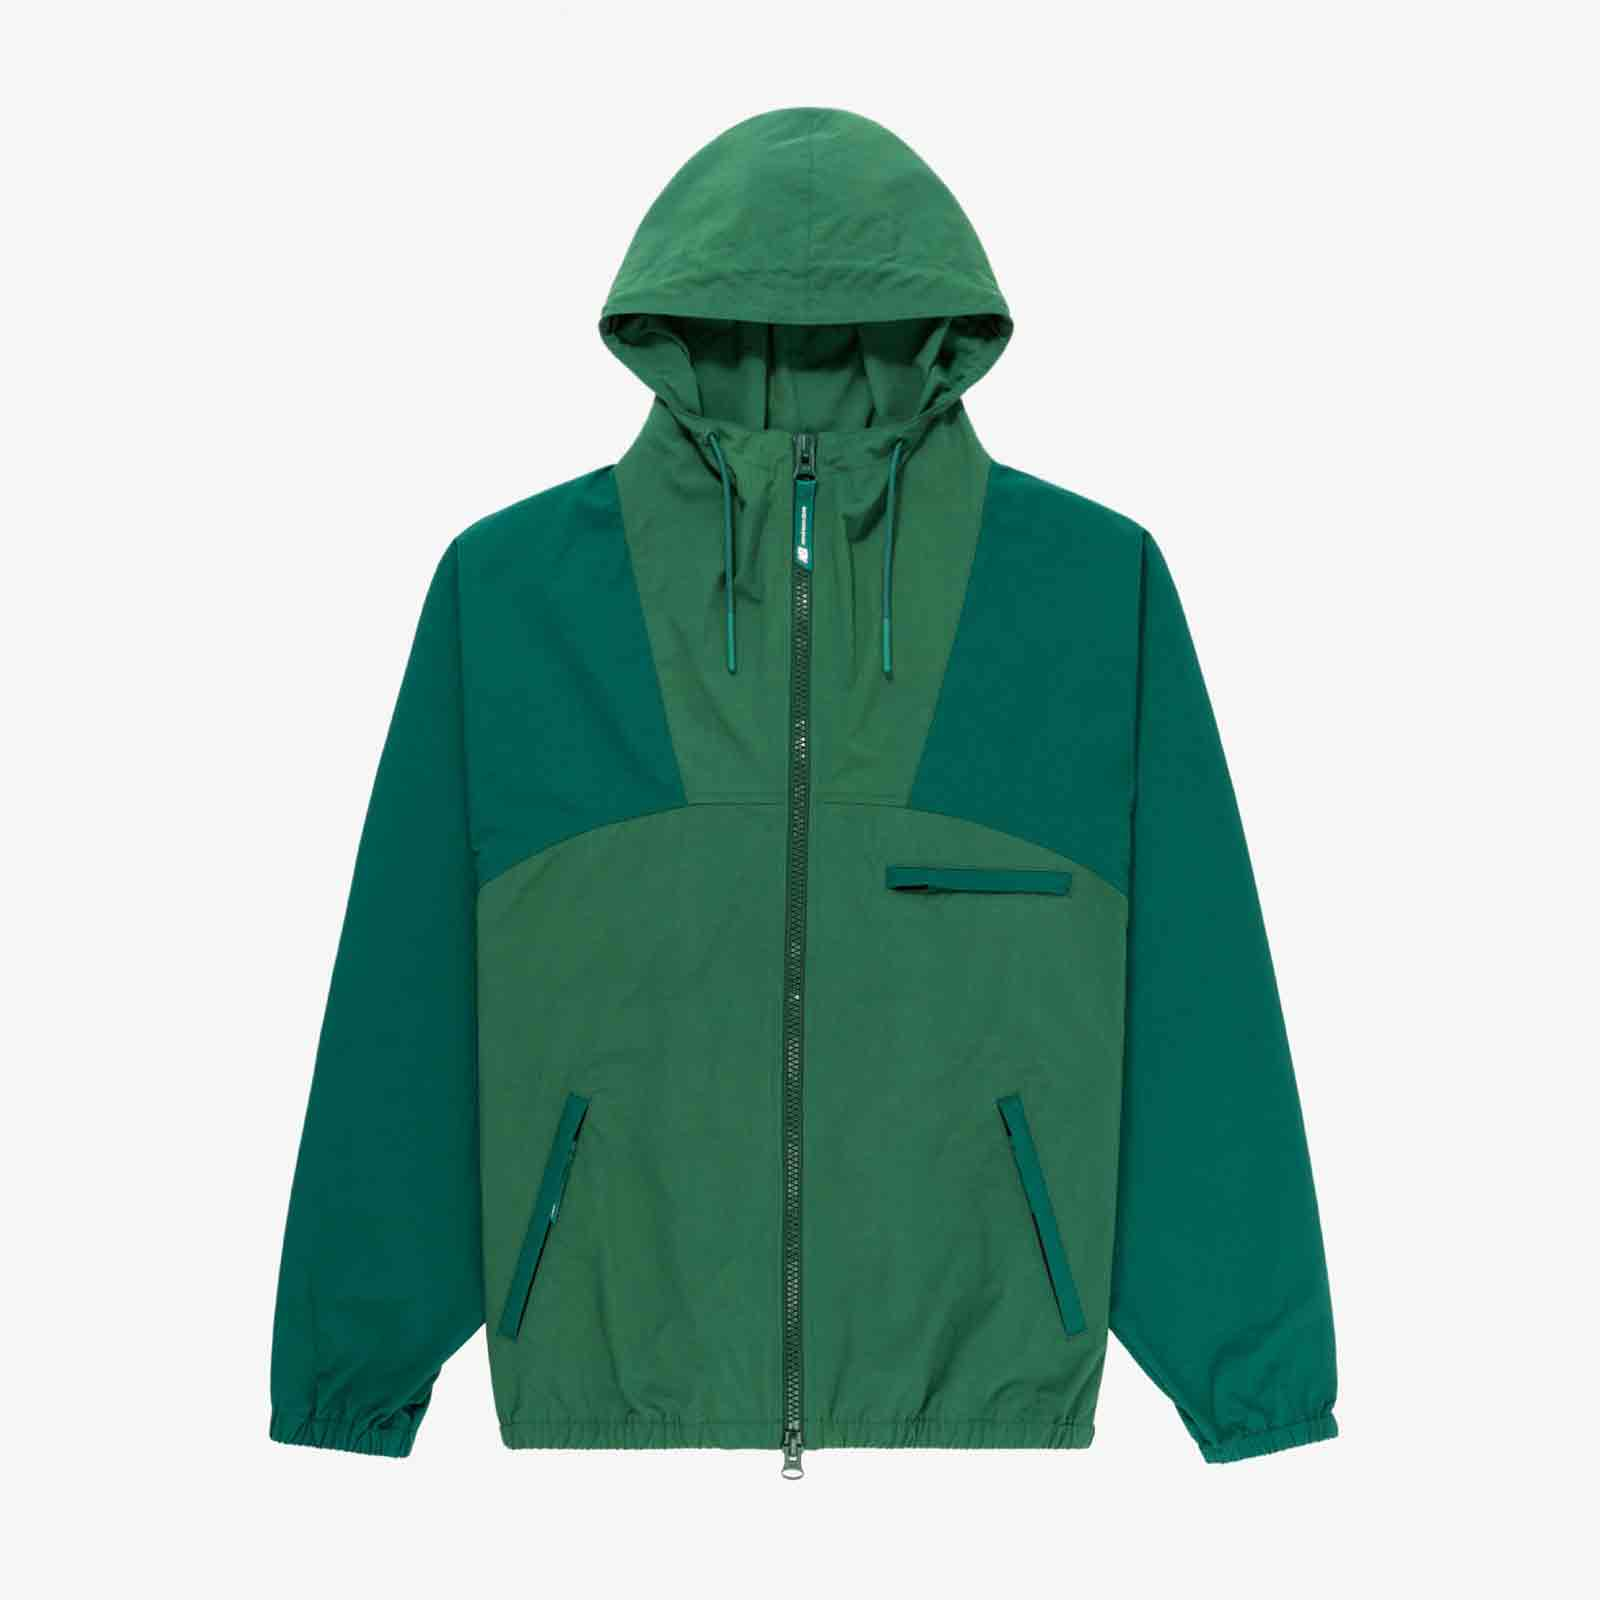 ALD / New Balance Nylon Jacket